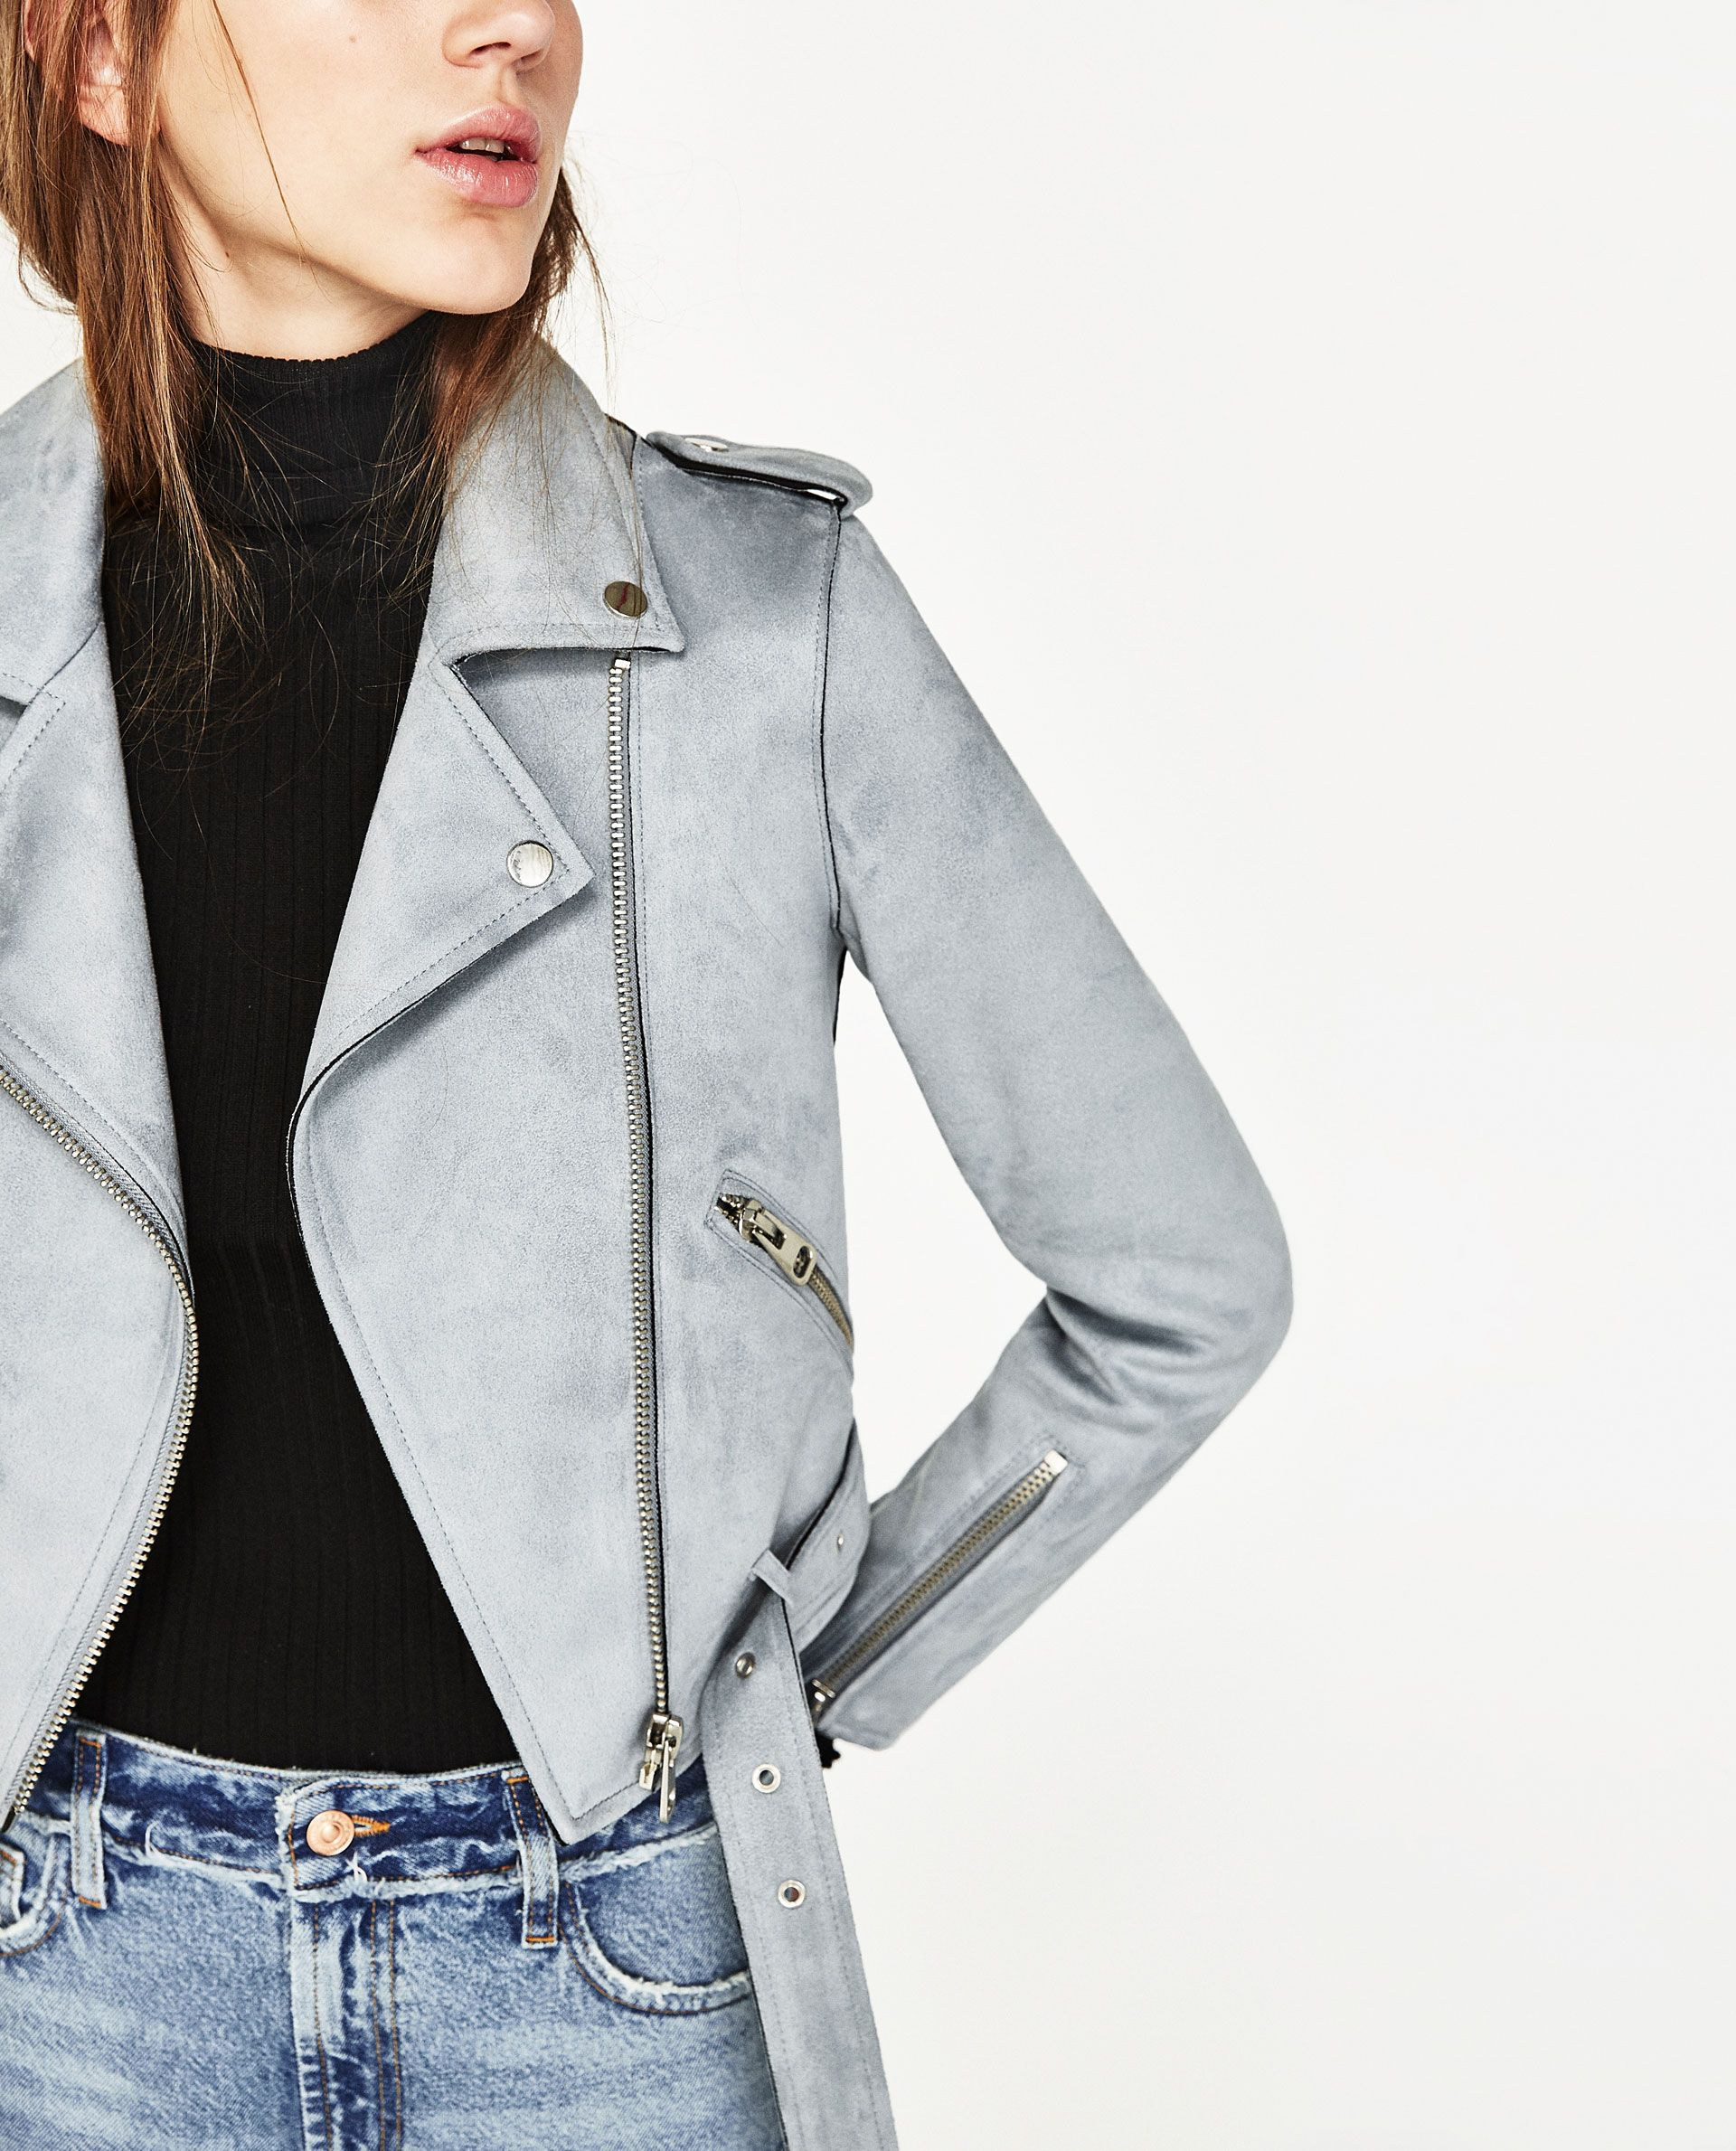 07748c6bd16 JACKET WITH ZIPS from Zara (under  100)